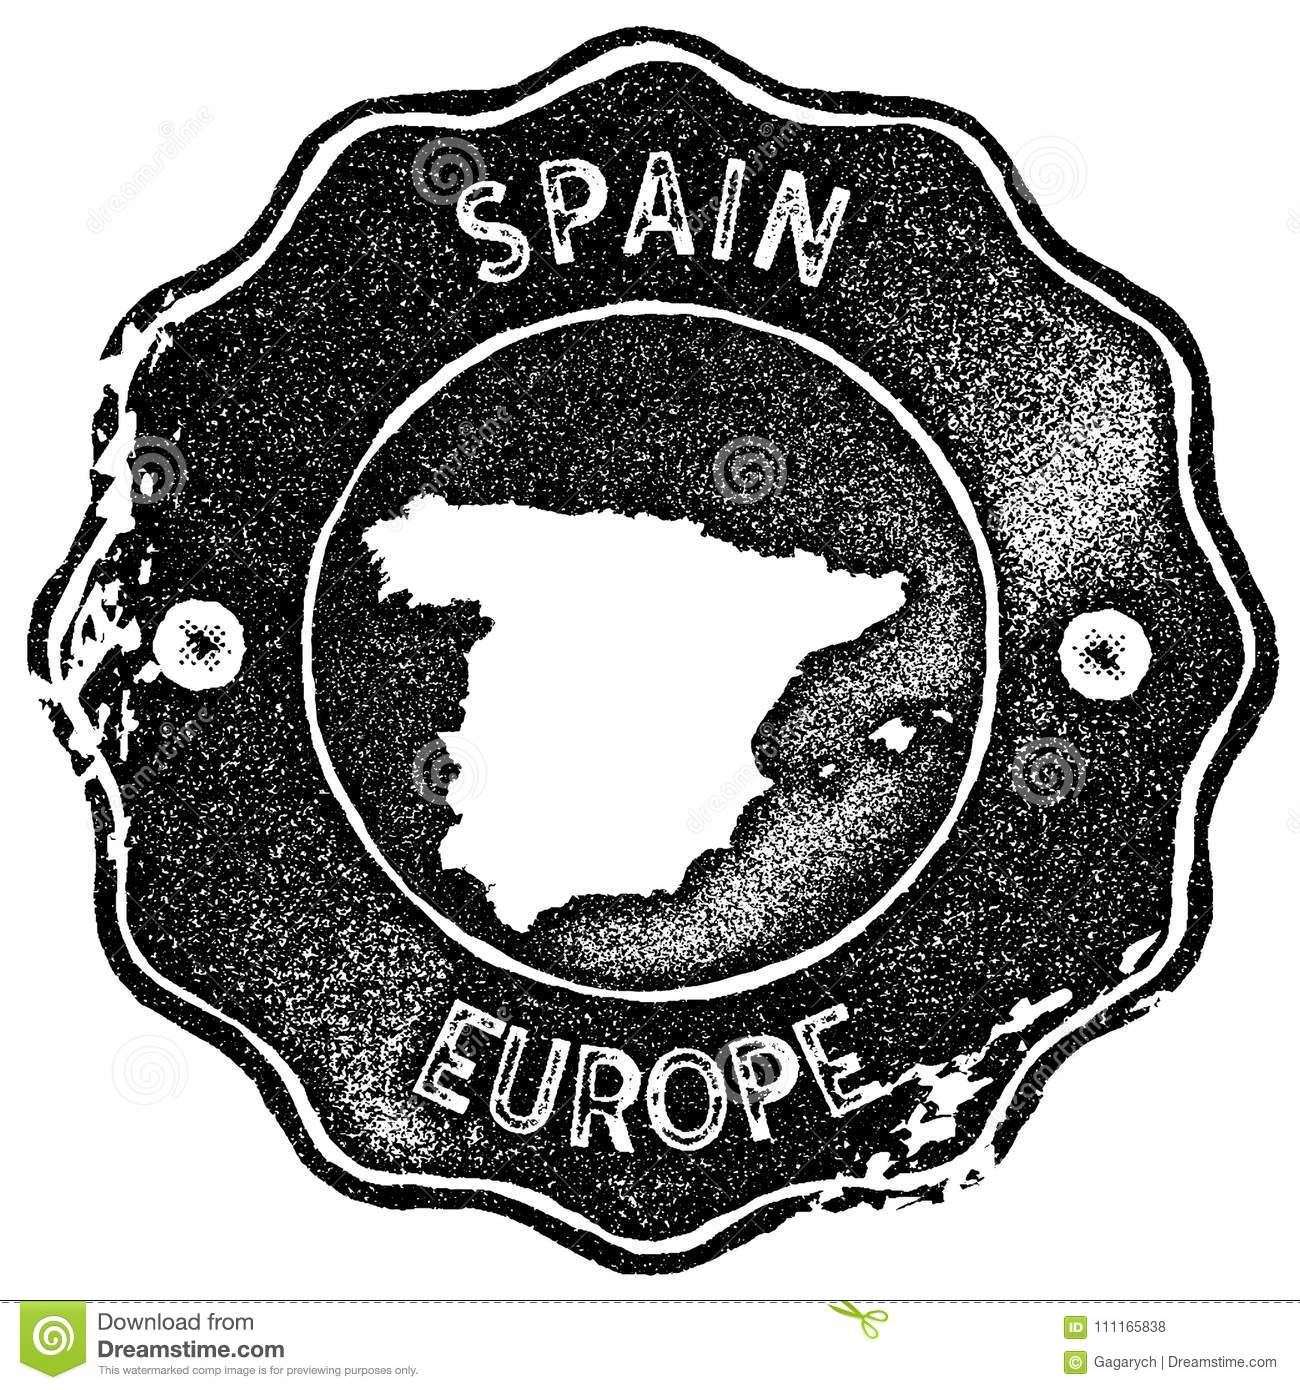 Map Of Spain To Label.Spain Map Vintage Stamp Stock Vector Illustration Of Spain 111165838